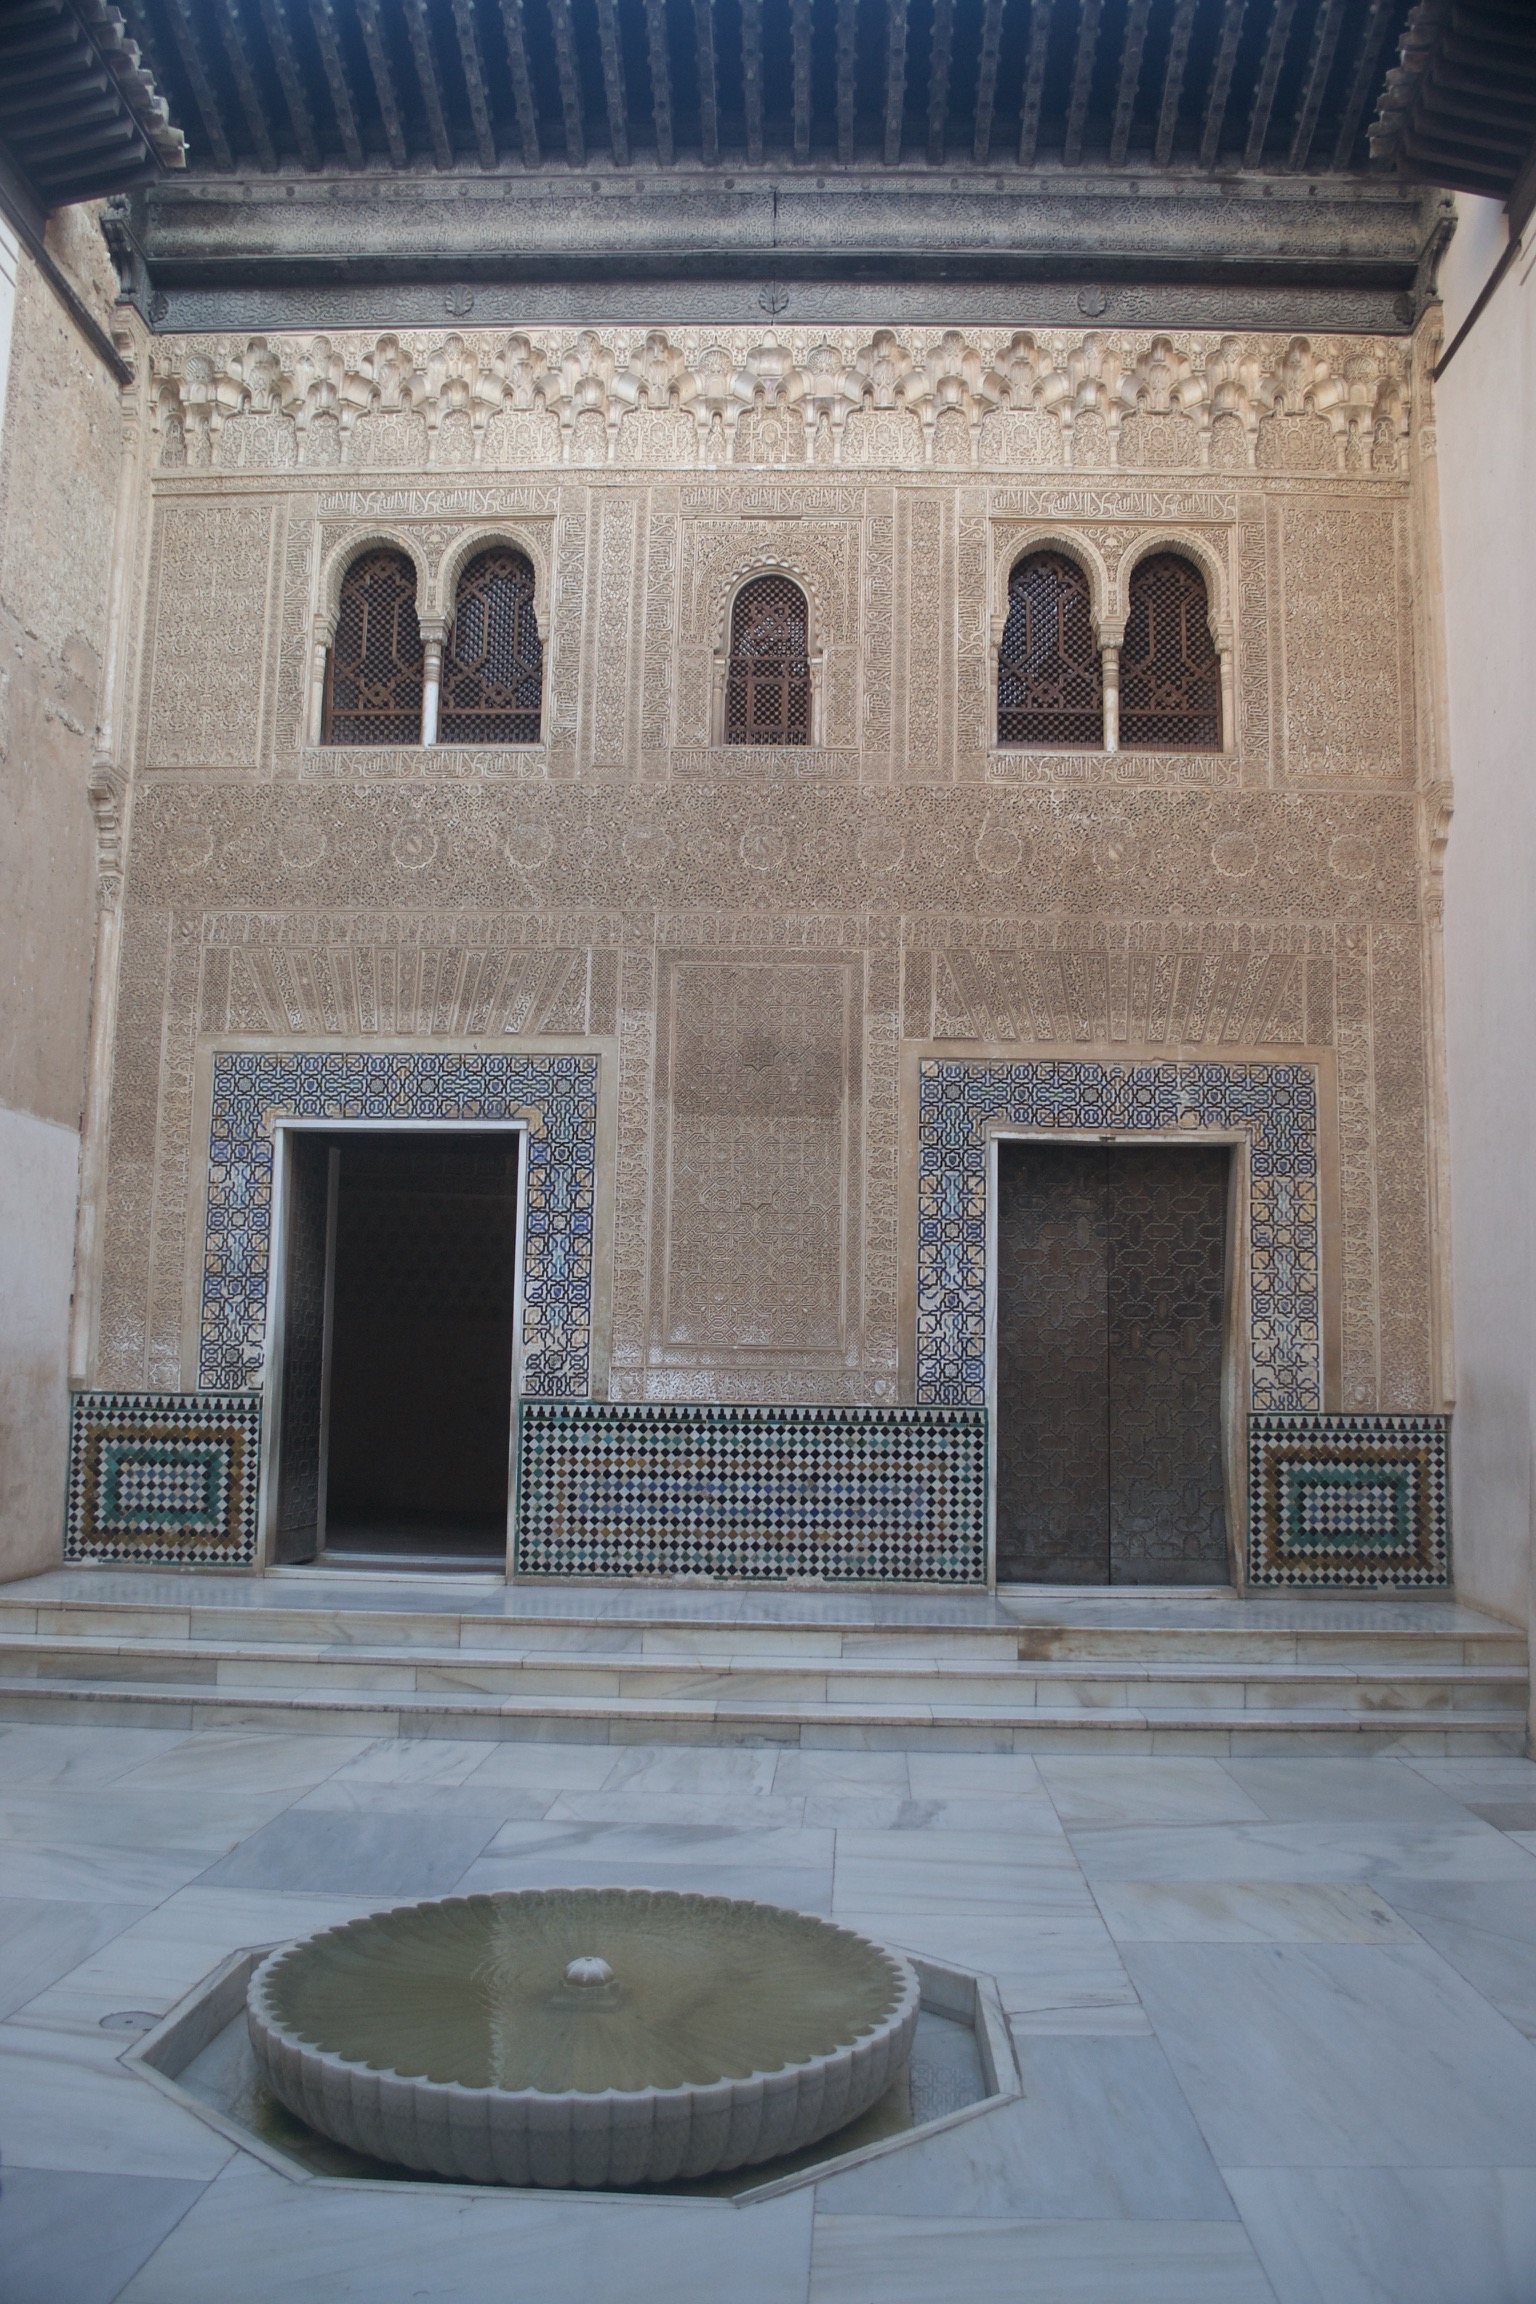 Two doorways are surrounded by mosaics.  The wall is covered with plastered molds or carved engravings.